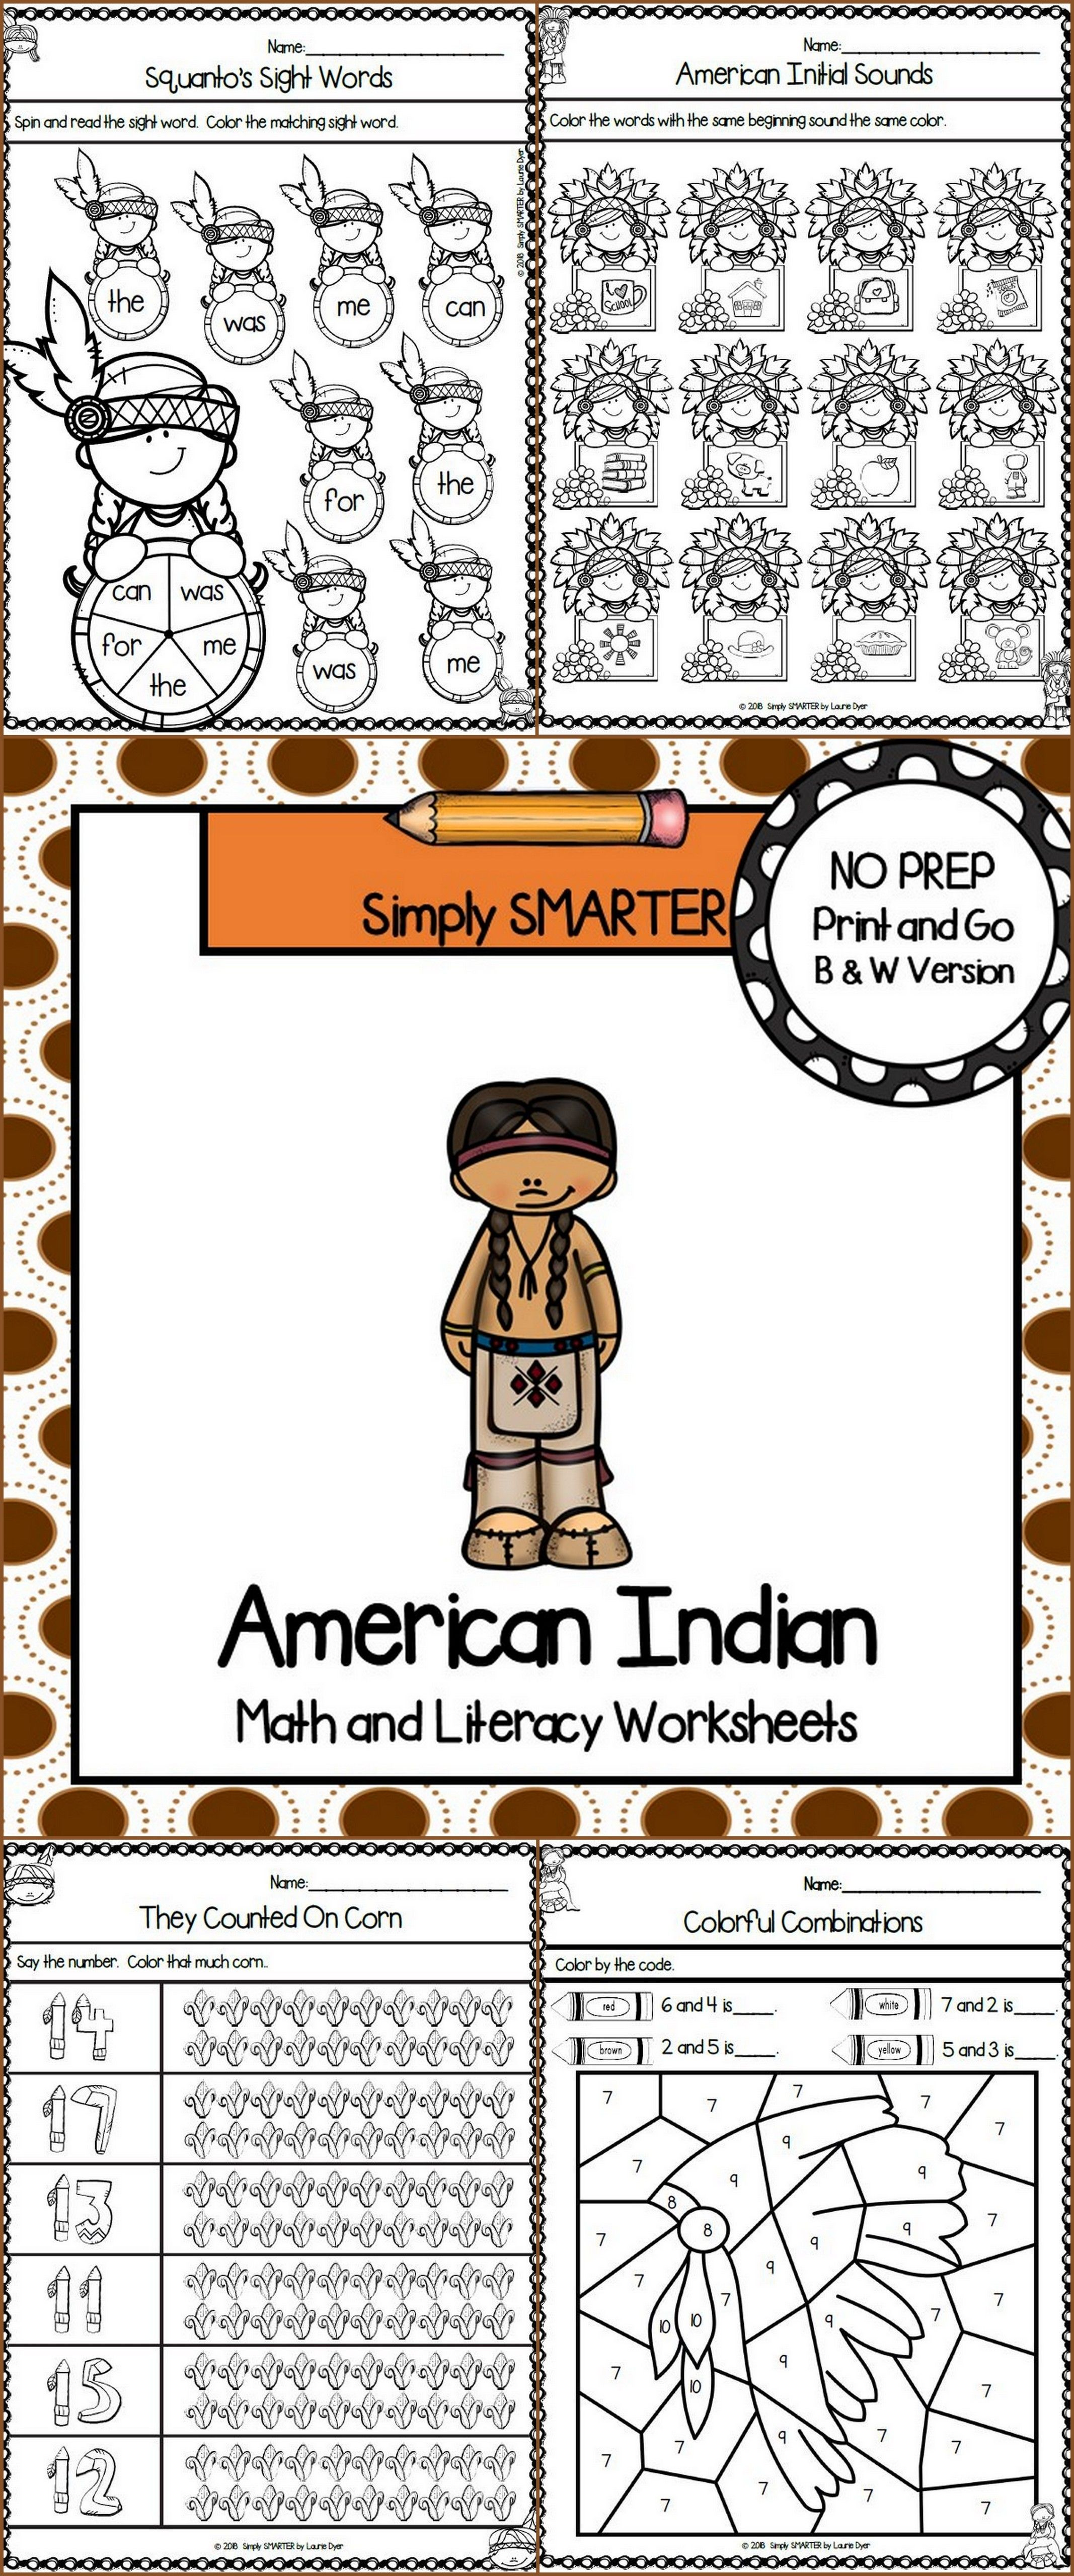 American Indian Themed Kindergarten Math and Literacy Worksheets and  Activities   Literacy worksheets [ 5120 x 2134 Pixel ]